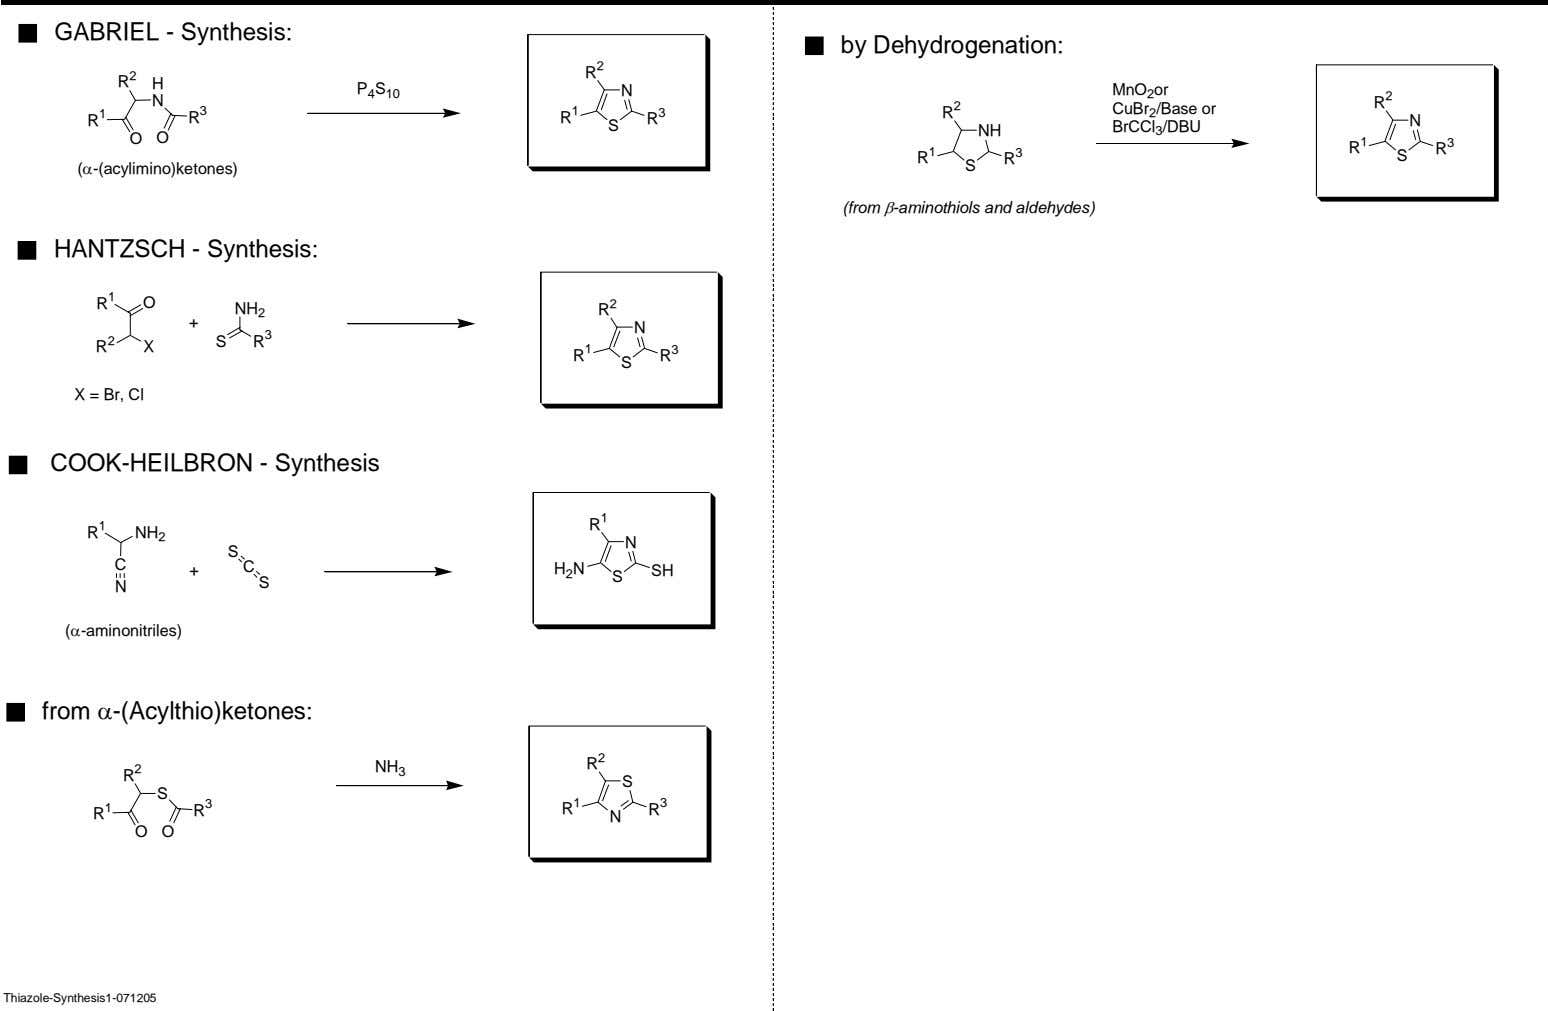 GABRIEL - Synthesis: by Dehydrogenation: 2 R 2 R H P N MnO 2 or